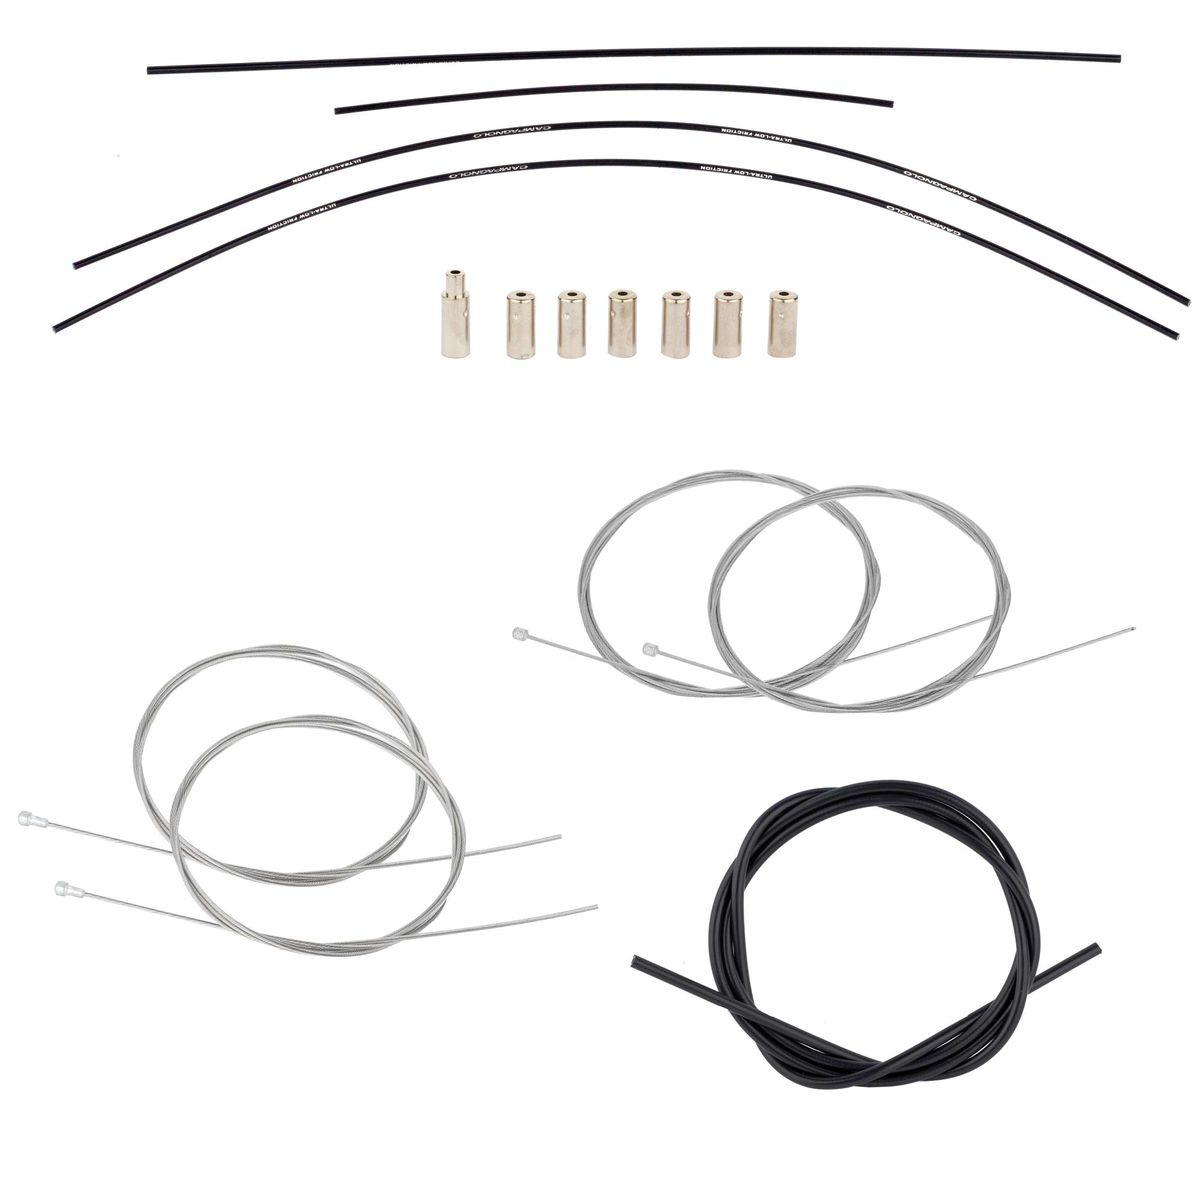 Record CG-ER600 brake/shift cable set